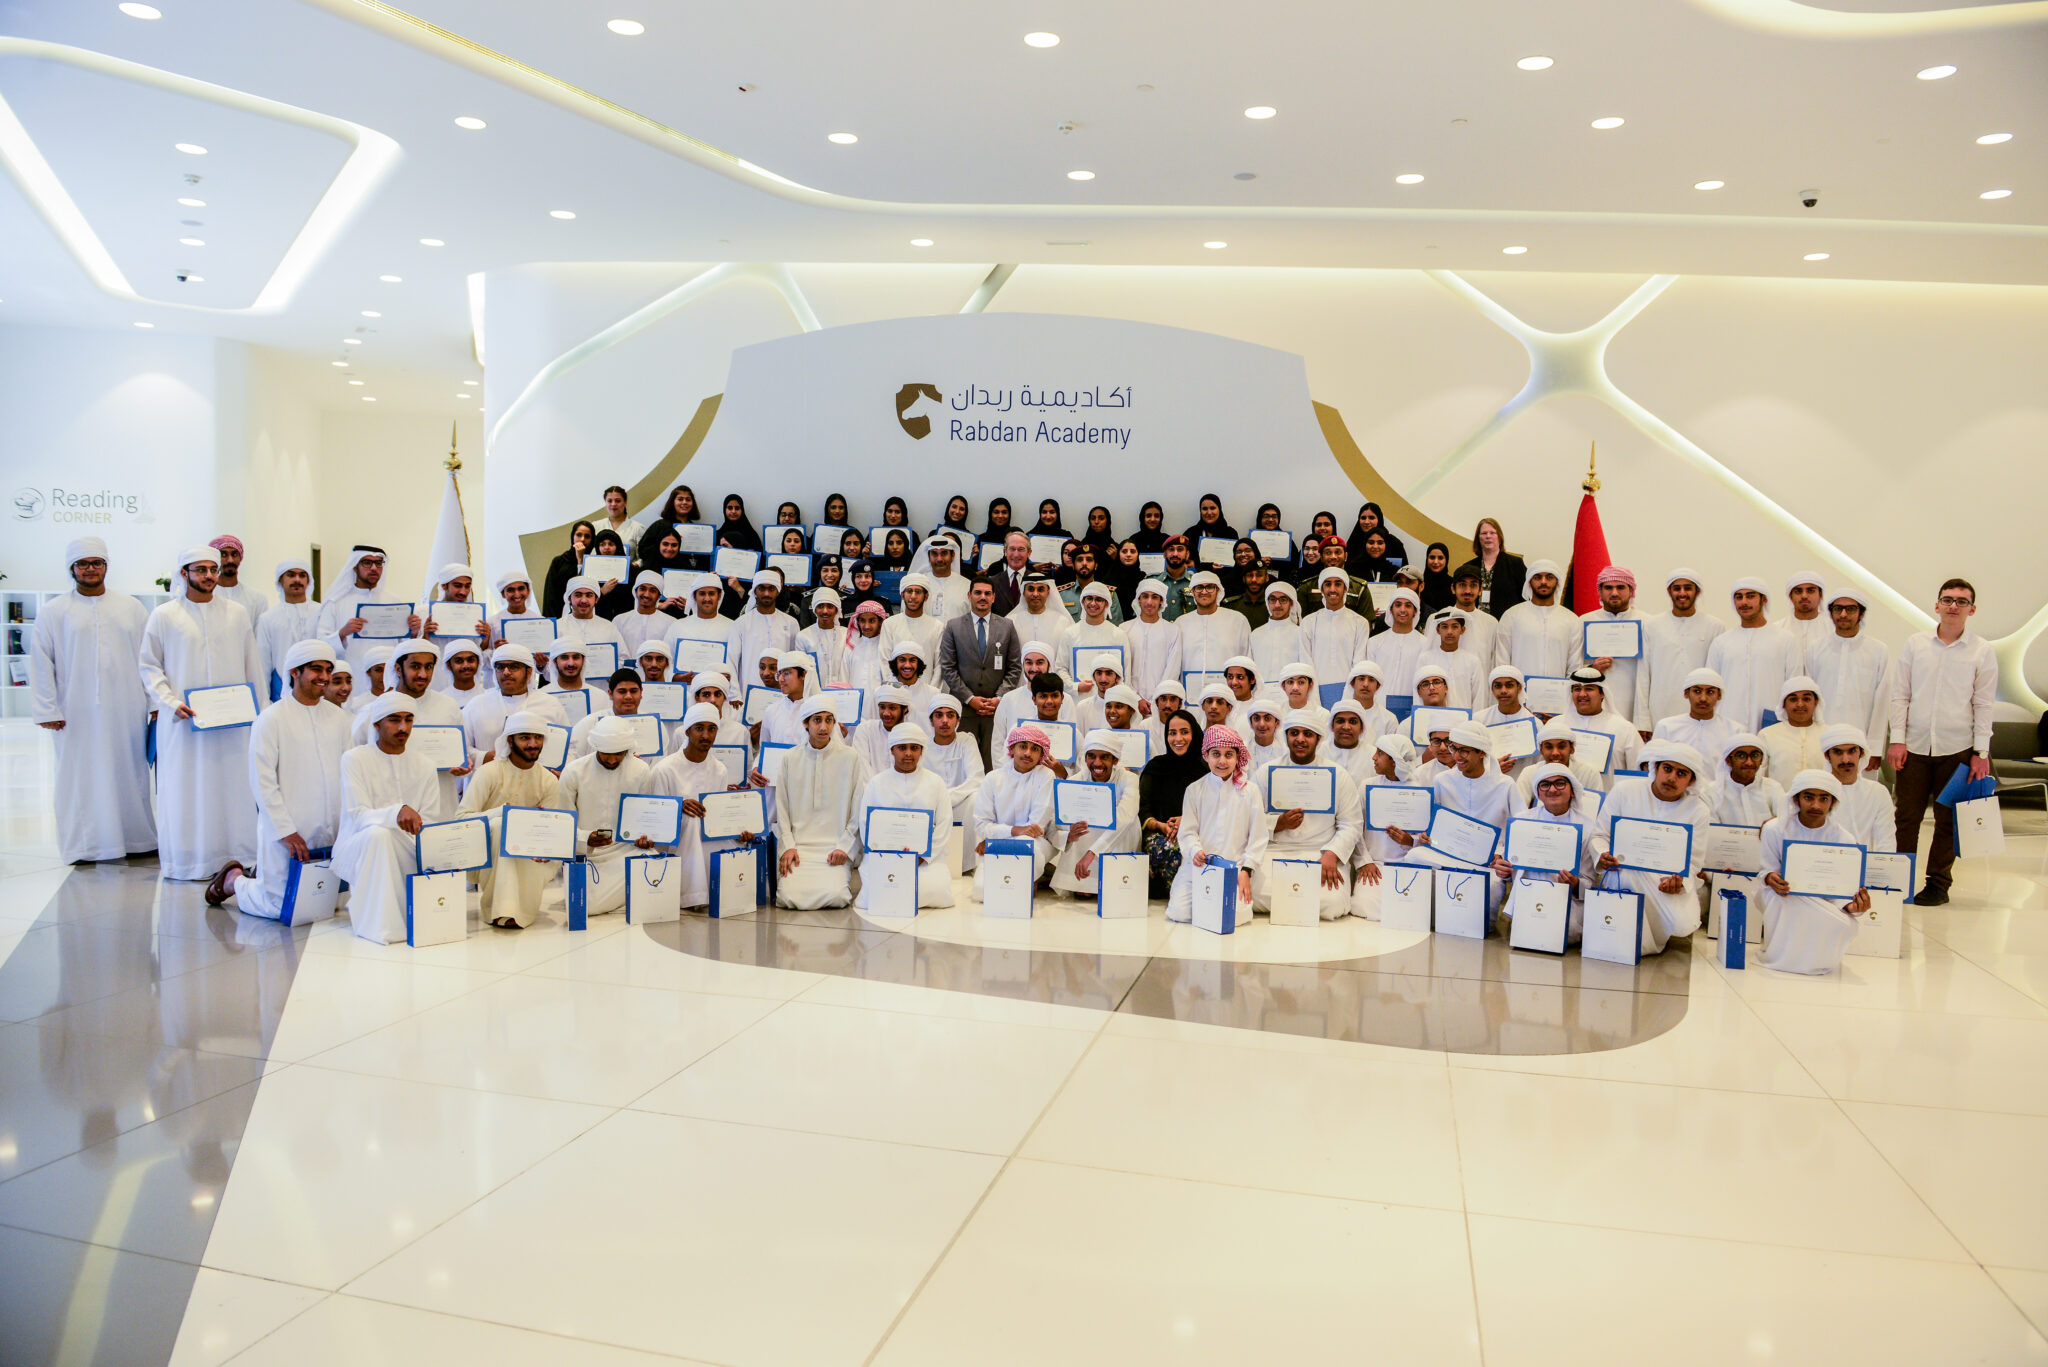 Rabdan Academy Concludes the 2019 Summer Program, held in coordination with AD Police and Civil Defense Academy